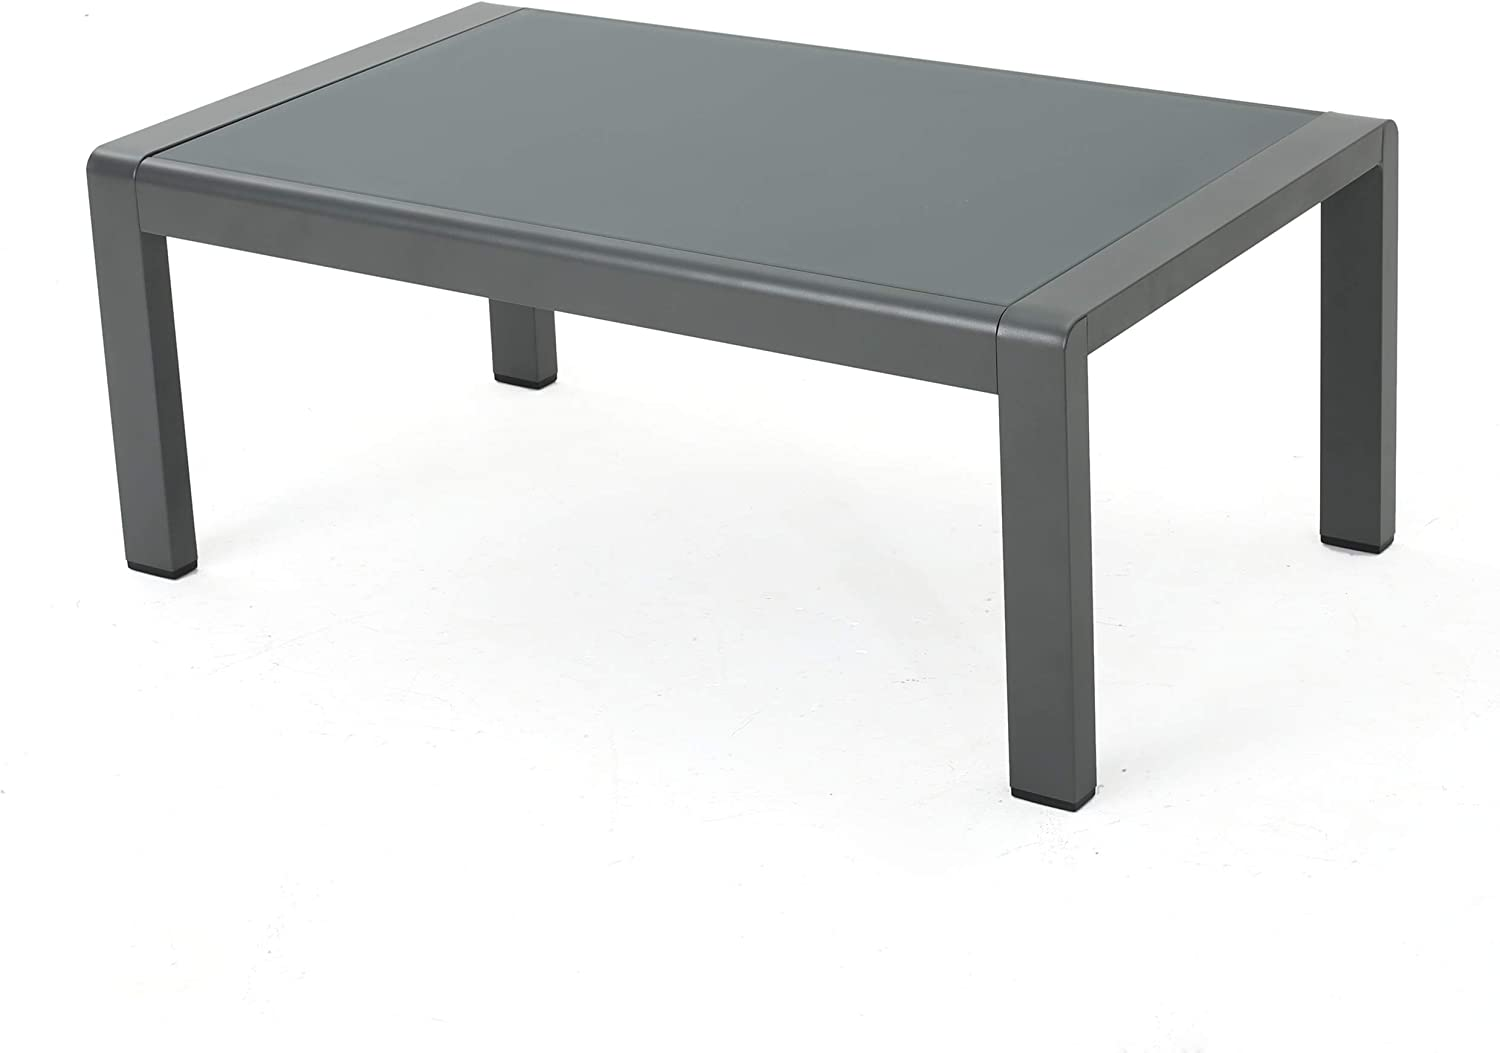 Christopher Knight Home Cape Coral Outdoor Aluminum Coffee Table with Tempered Glass Table Top, Grey : Garden & Outdoor